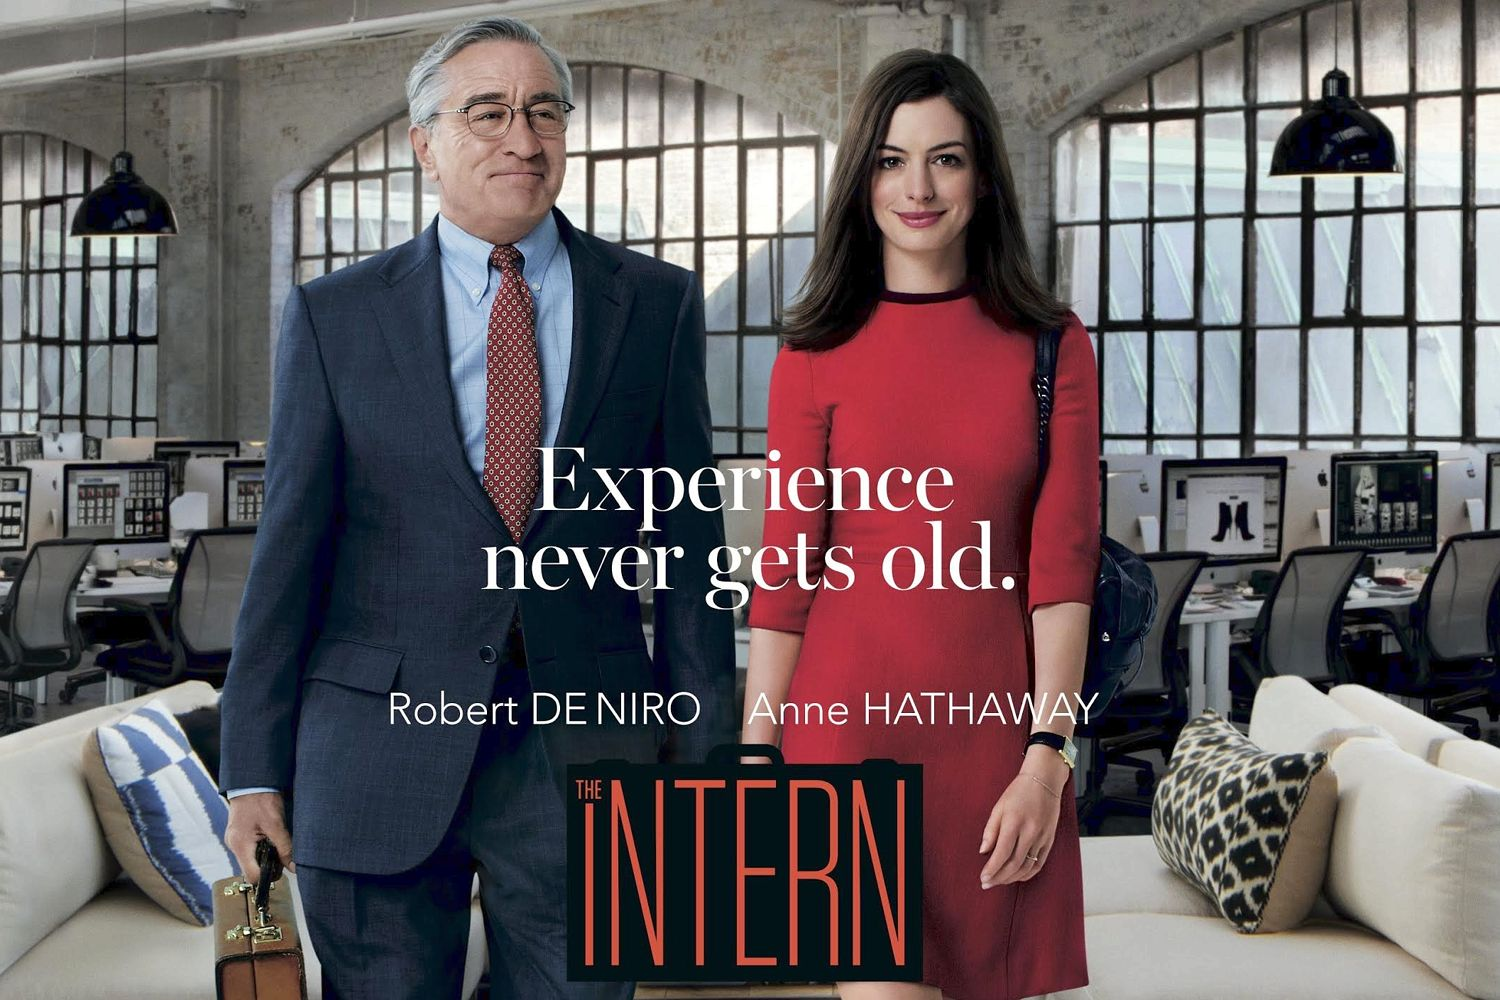 the intern 2015 west usa bluray 720p shaanig 999mb google drive amadei33